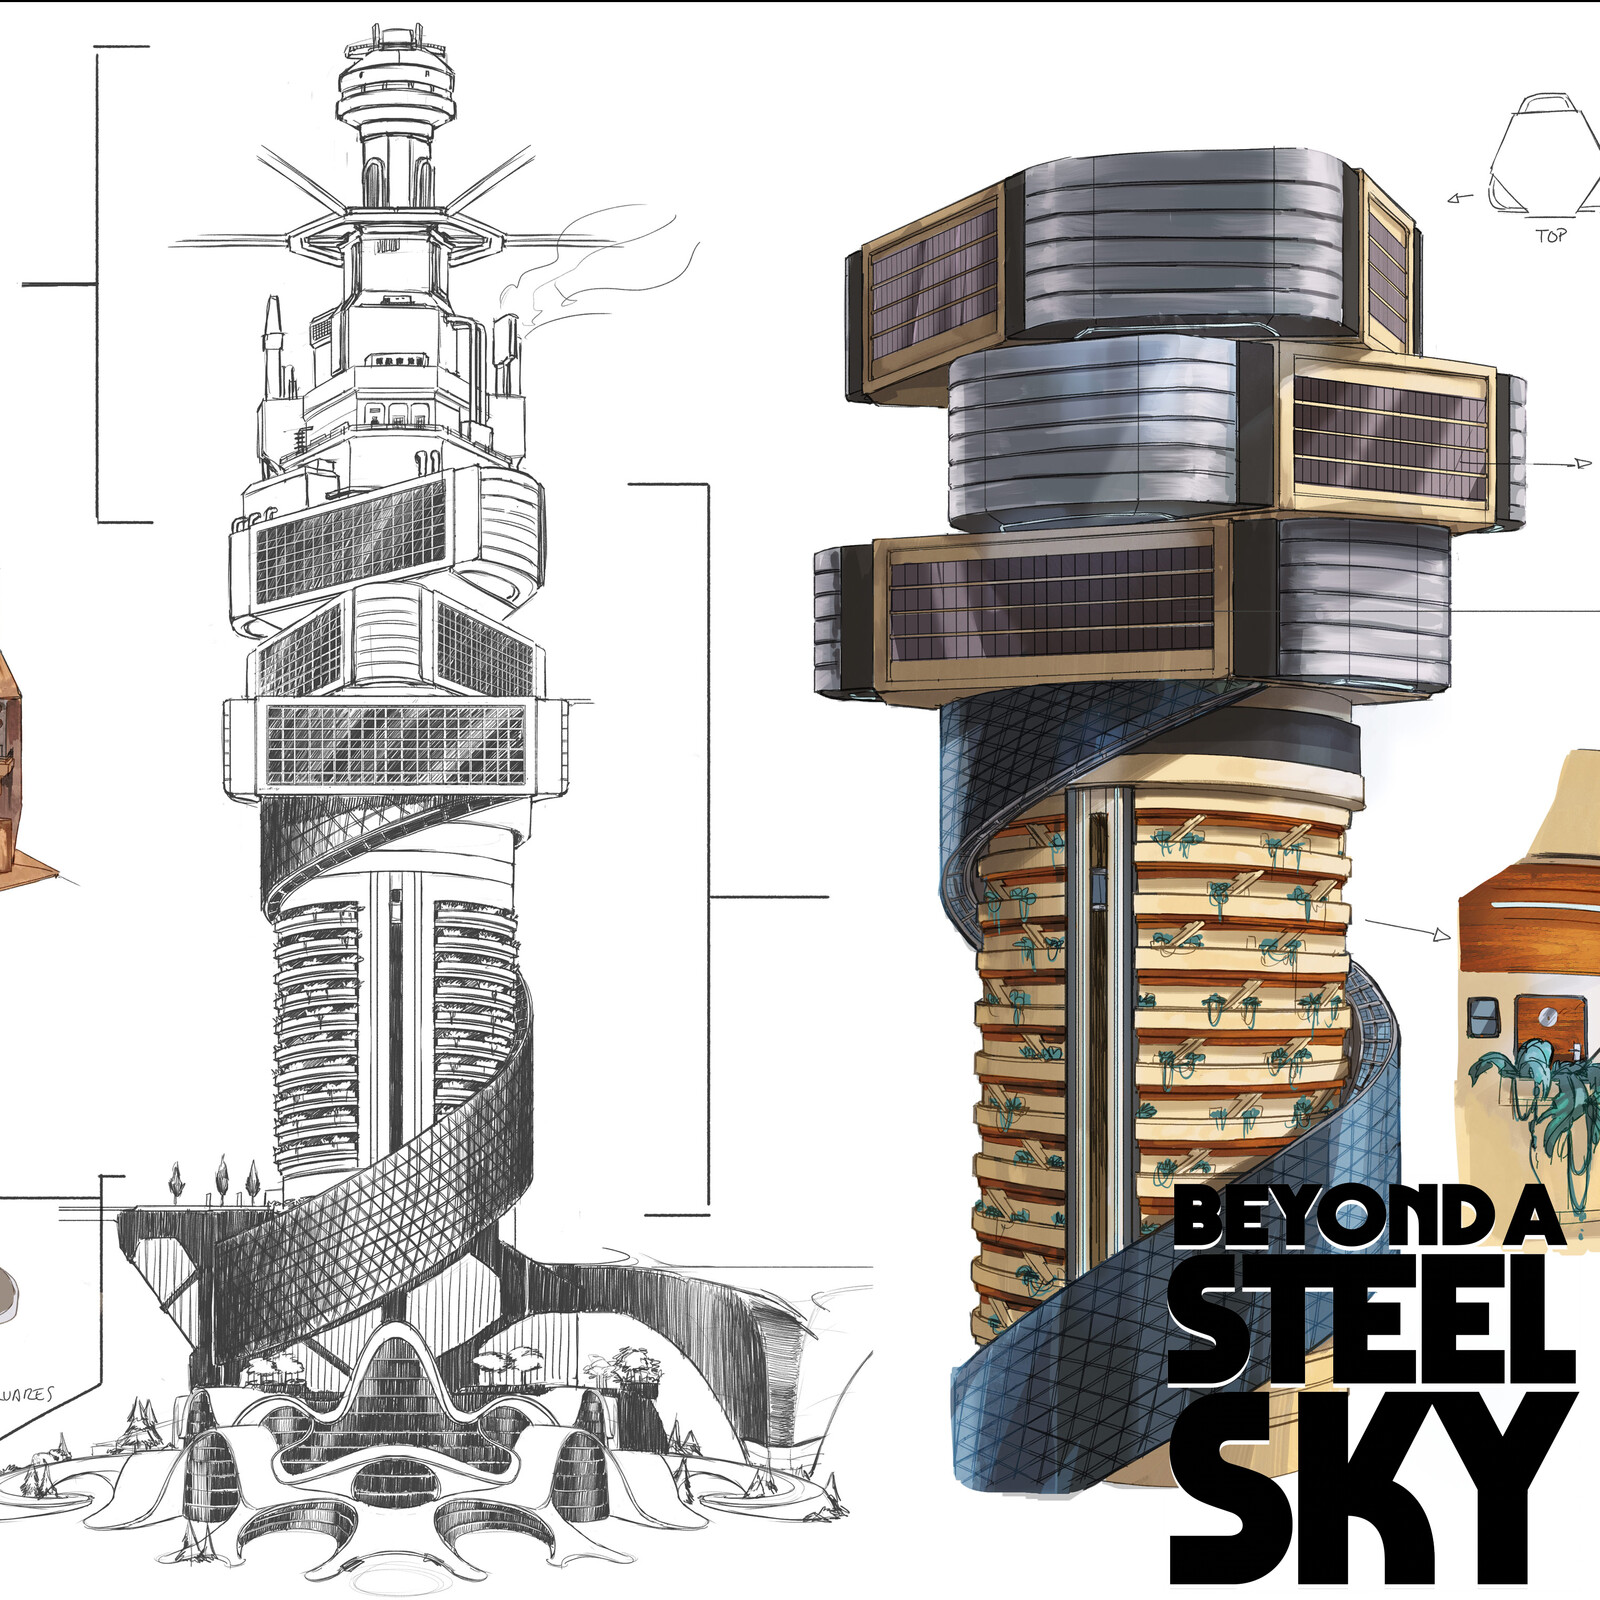 BEYOND A STEEL SKY: Union City Towers and paths_04